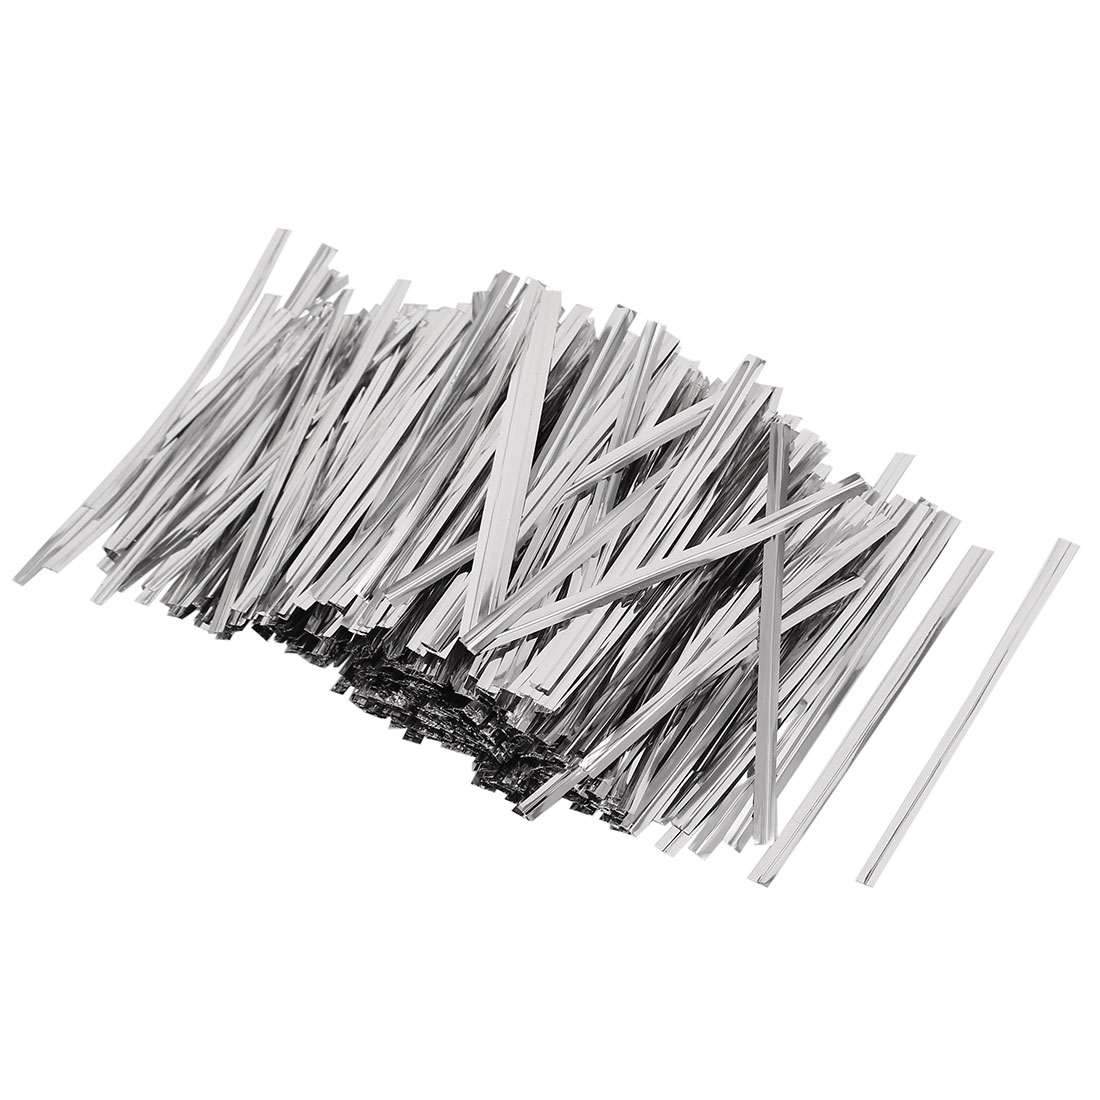 2400 Pcs Silver Tone 8cm Length Candy Bread Bags Packaging Twist Cable Tie